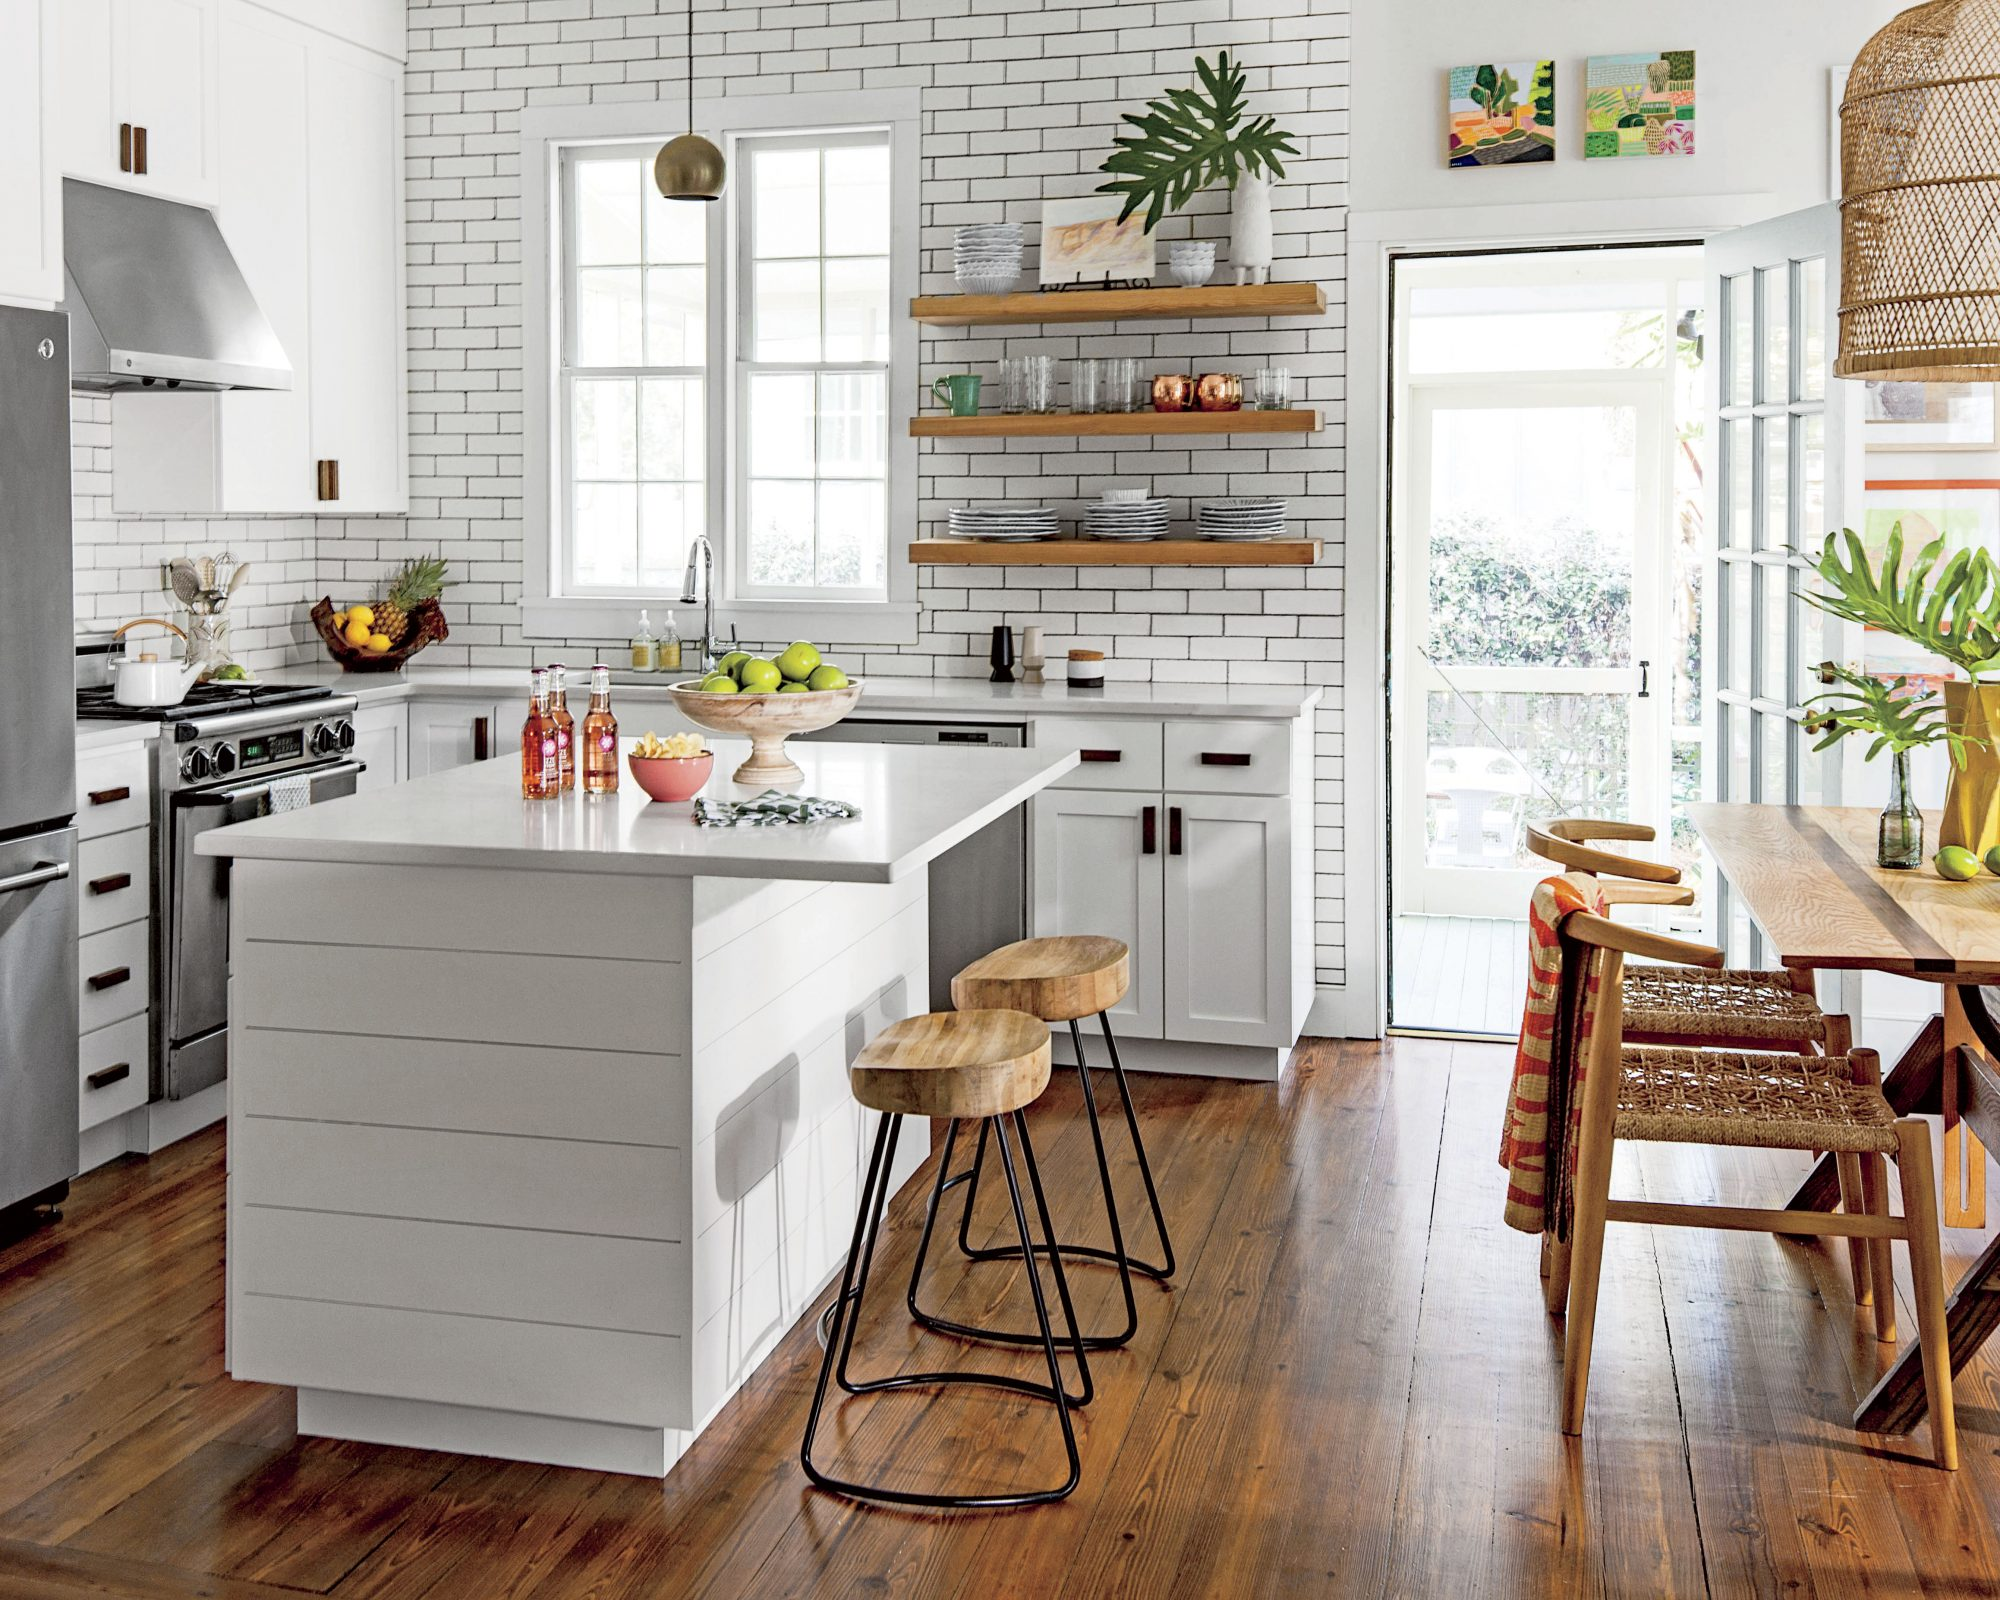 Lulie Wallace Kitchen with Quartz Countertops